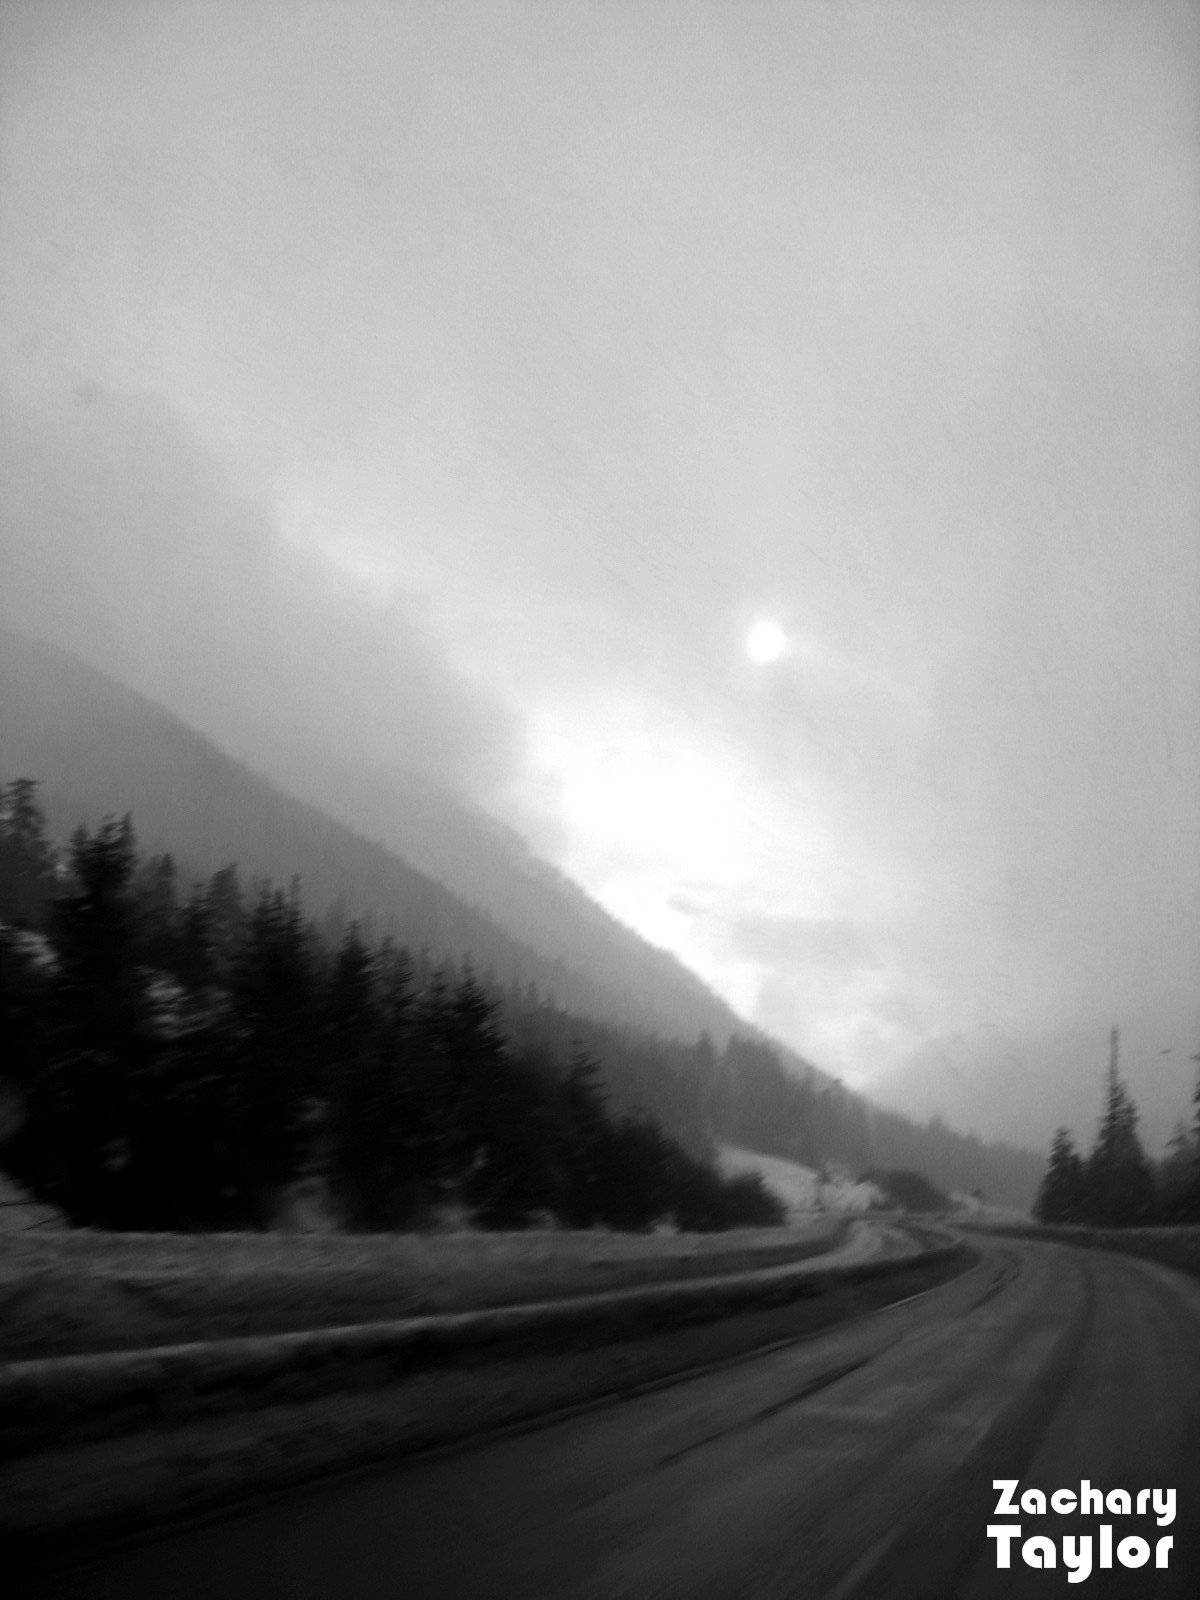 Drivin to big white